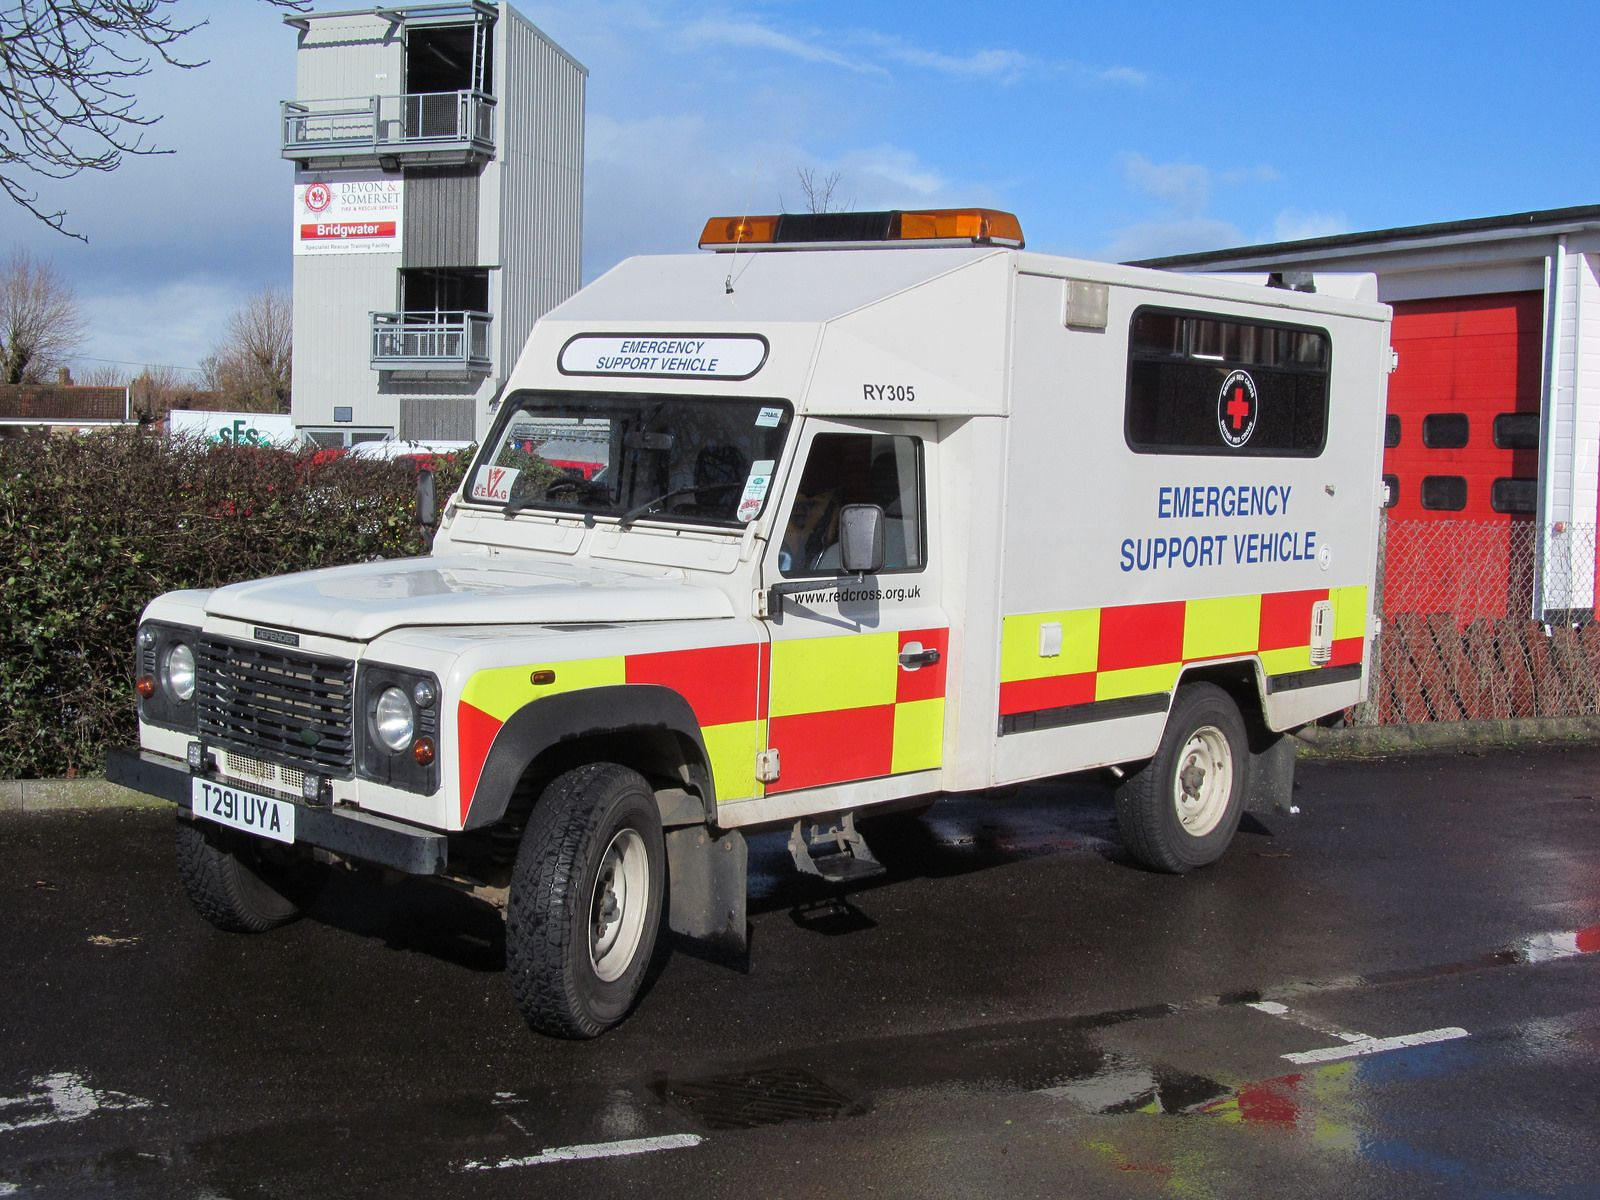 Land Rover Defender 130 Td5 Emergency Support Vehicle built on